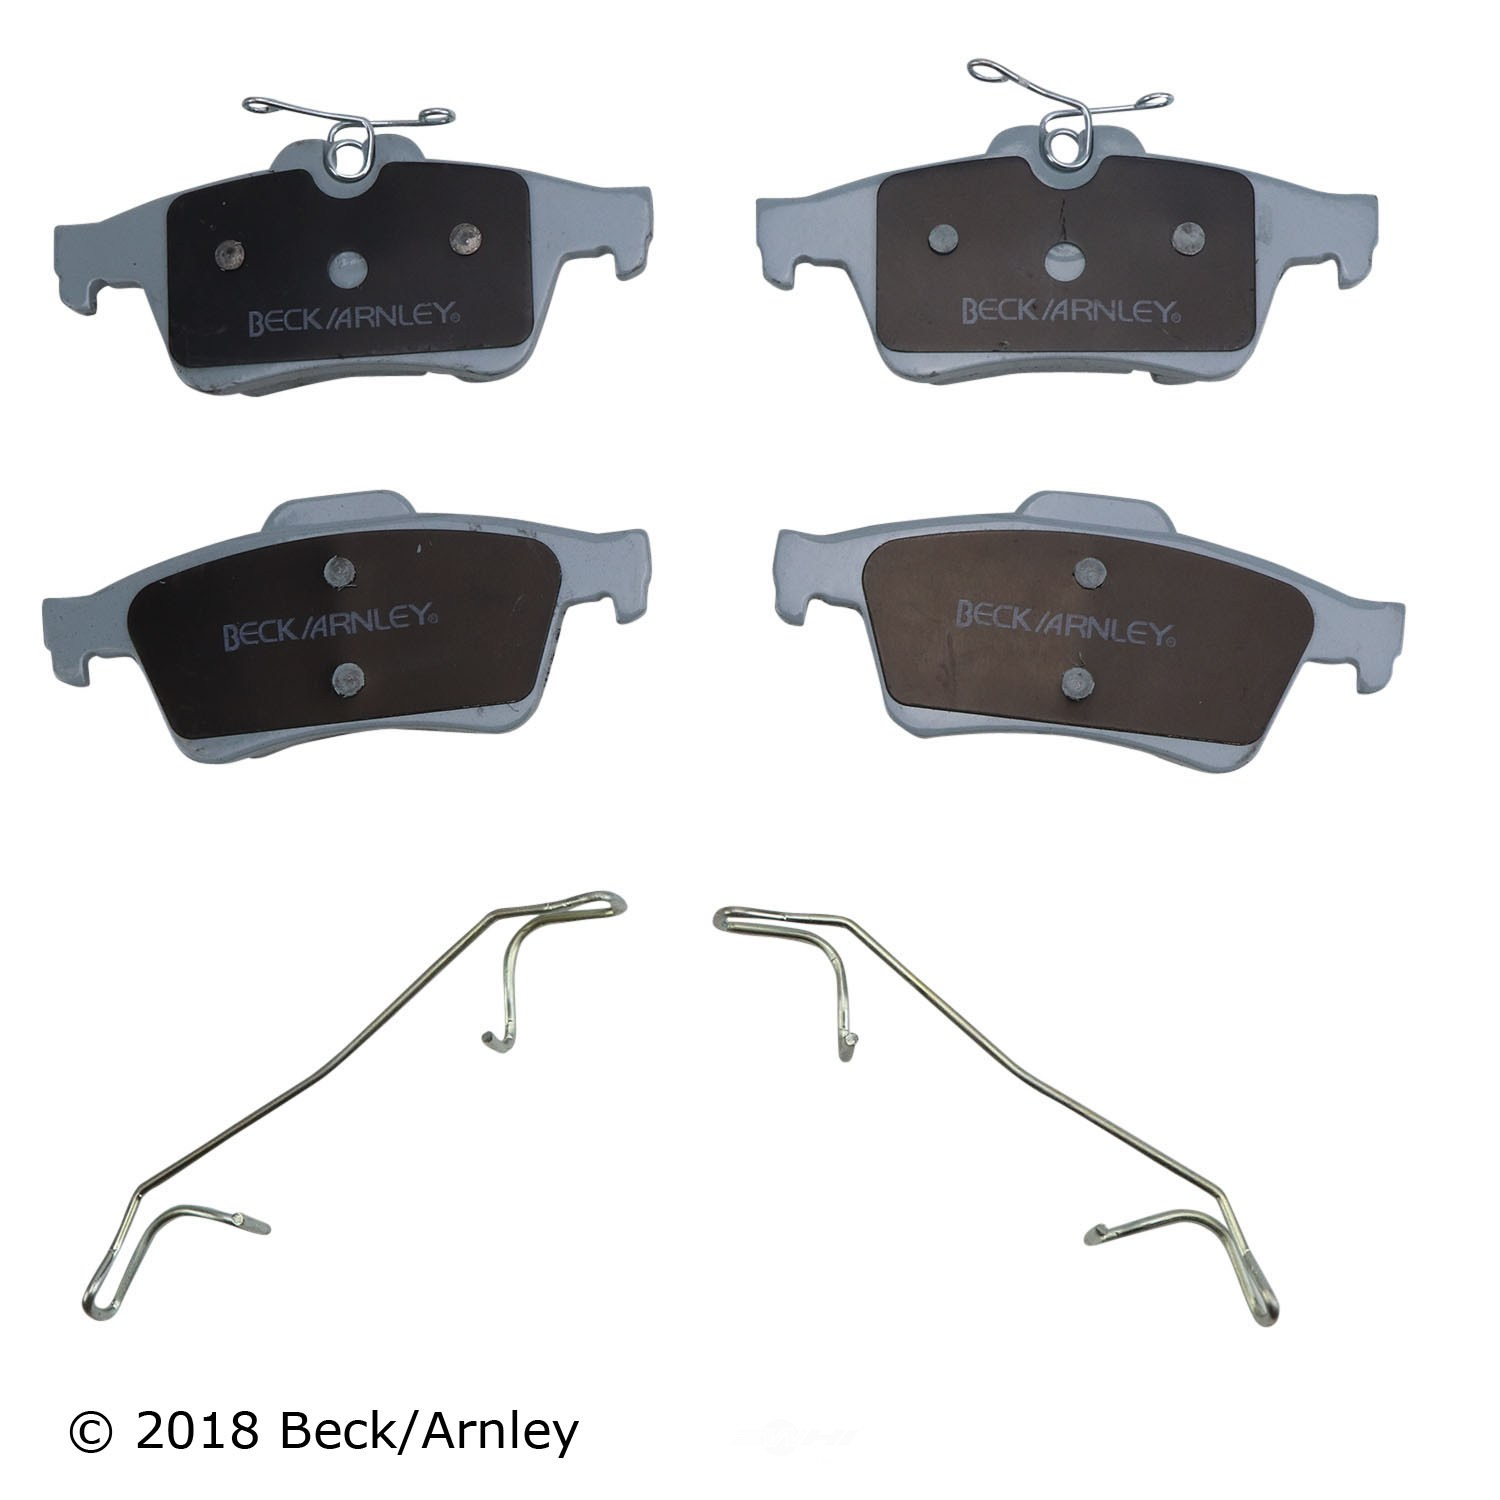 BECK/ARNLEY - Disc Brake Pad and Hardware Kit (Rear) - BAR 085-6753